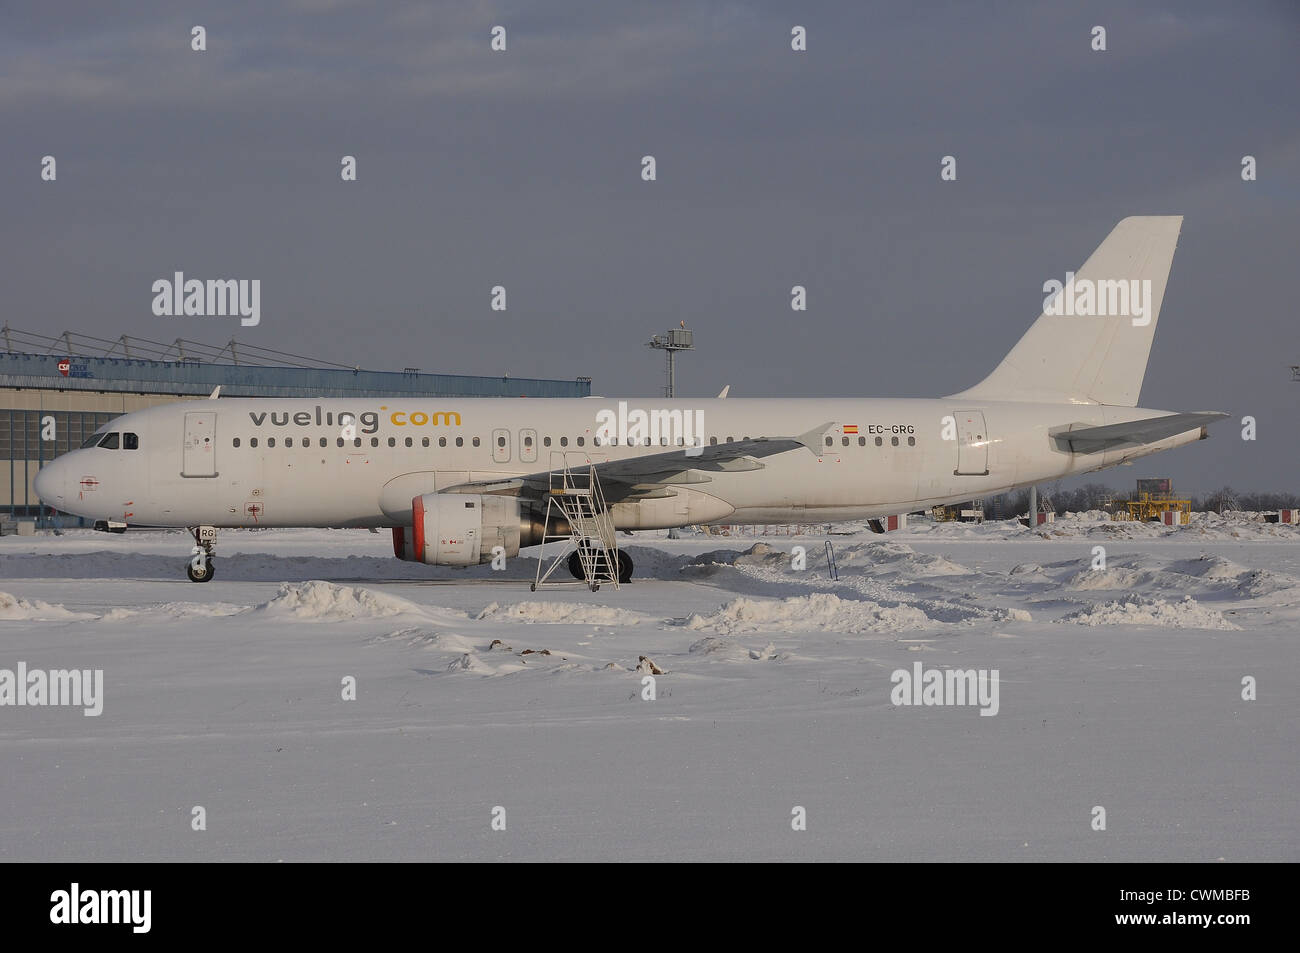 Vueling Airlines Airbus A320 - Stock Image